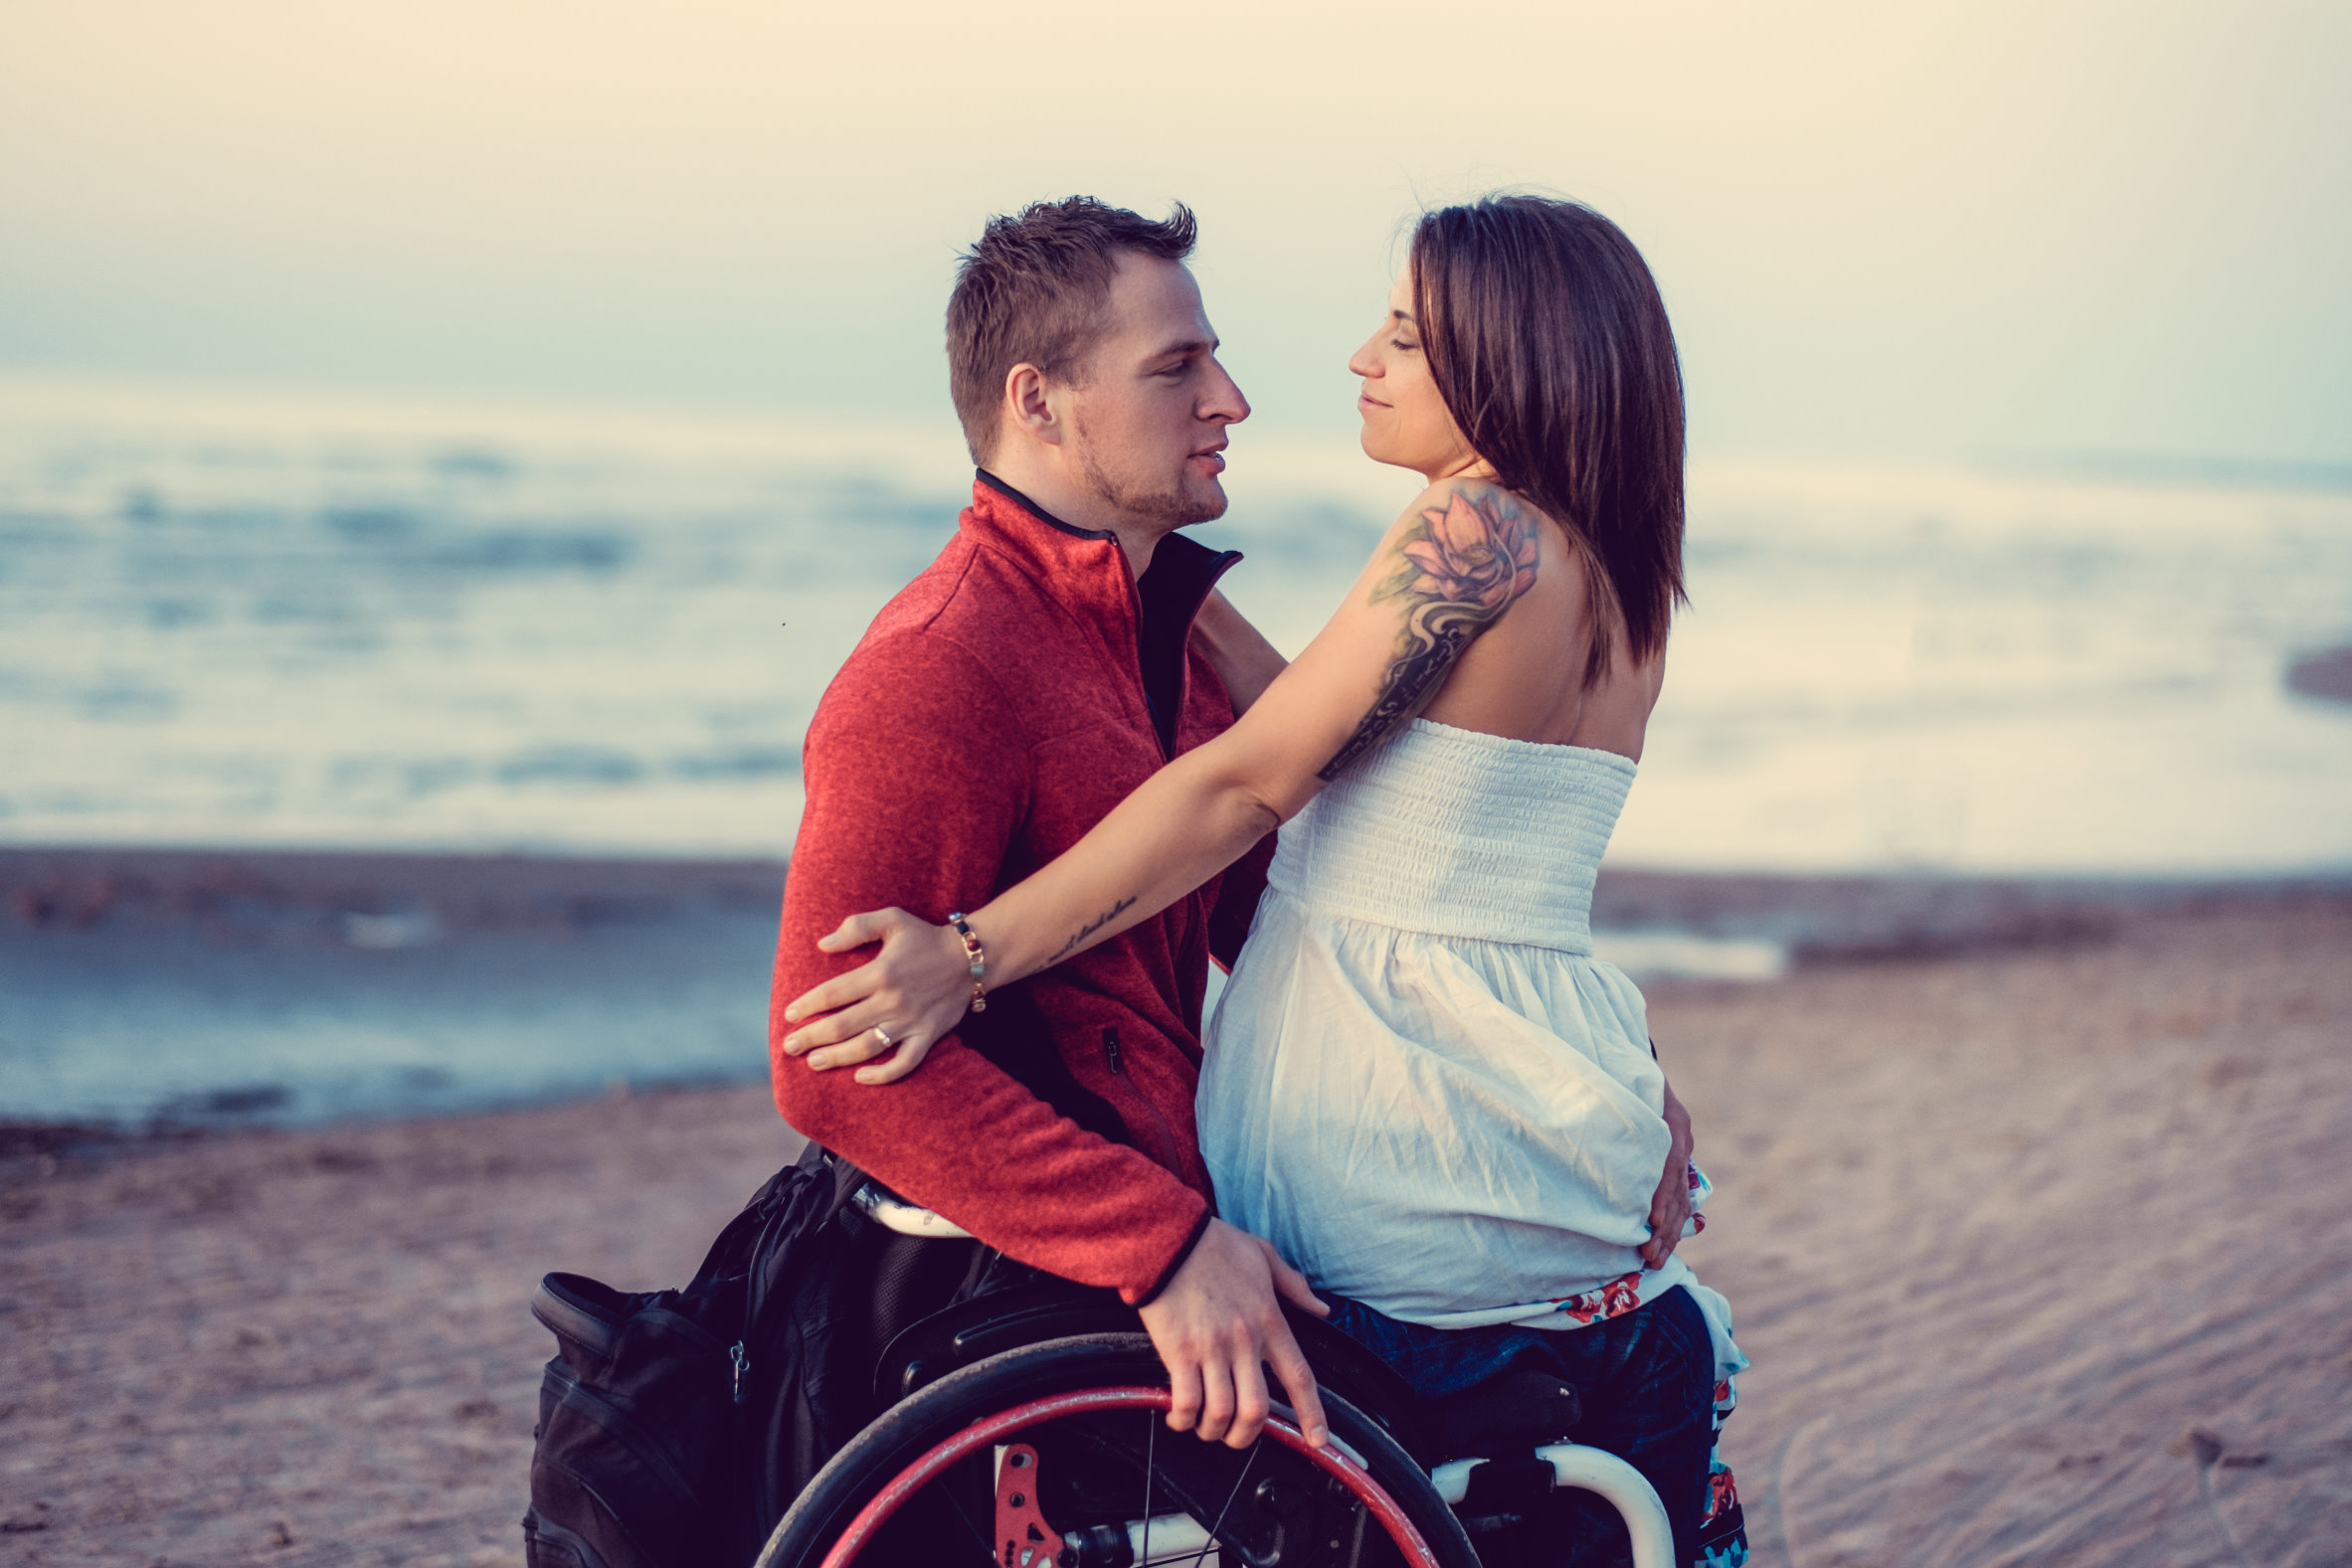 Free dating for disabled singles